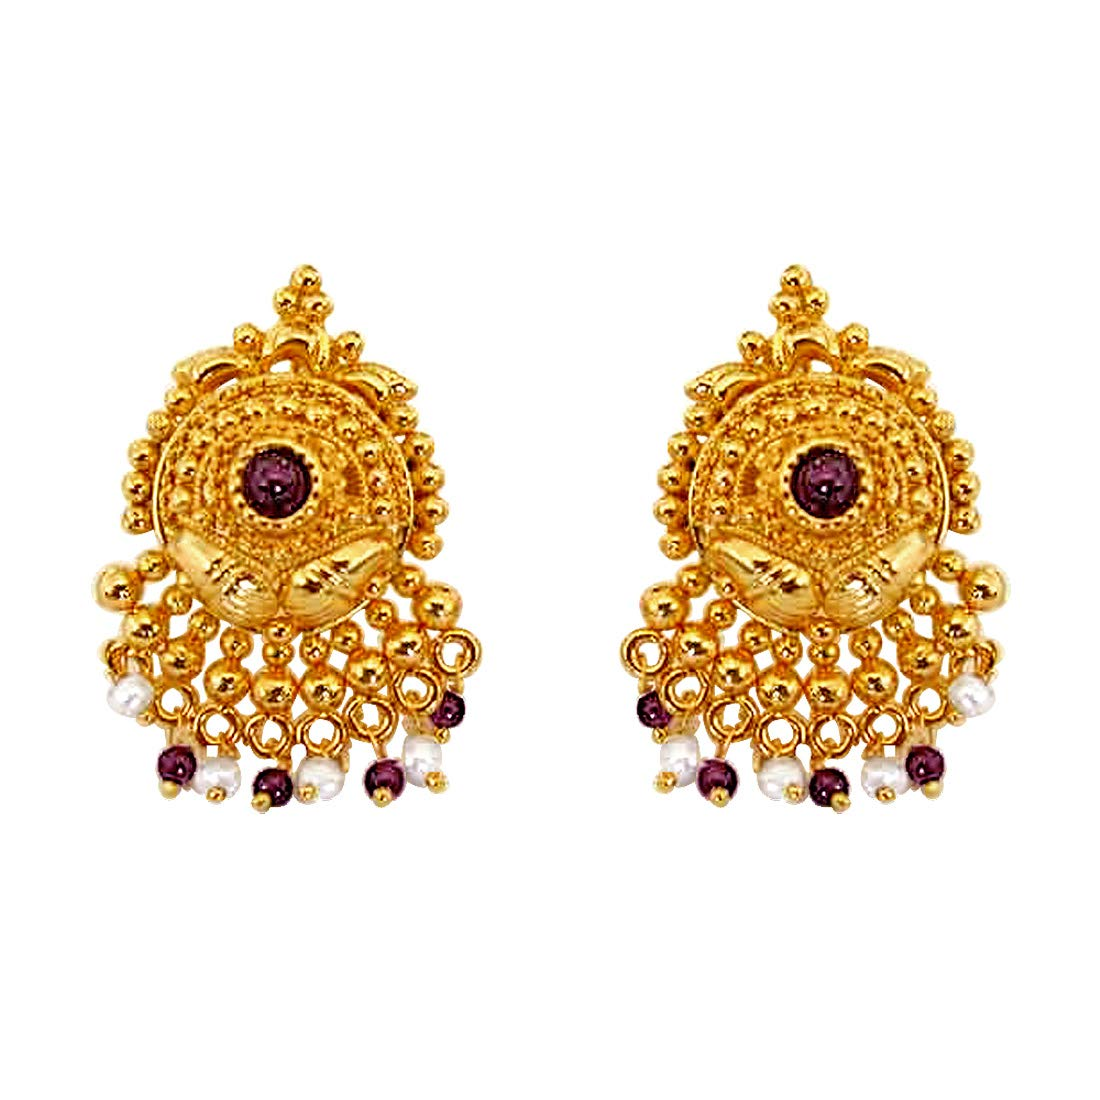 Garnet Grace - Temple Design Real Freshwater Pearl, Red Garnet & Gold Plated Earrings for Women (SE36)